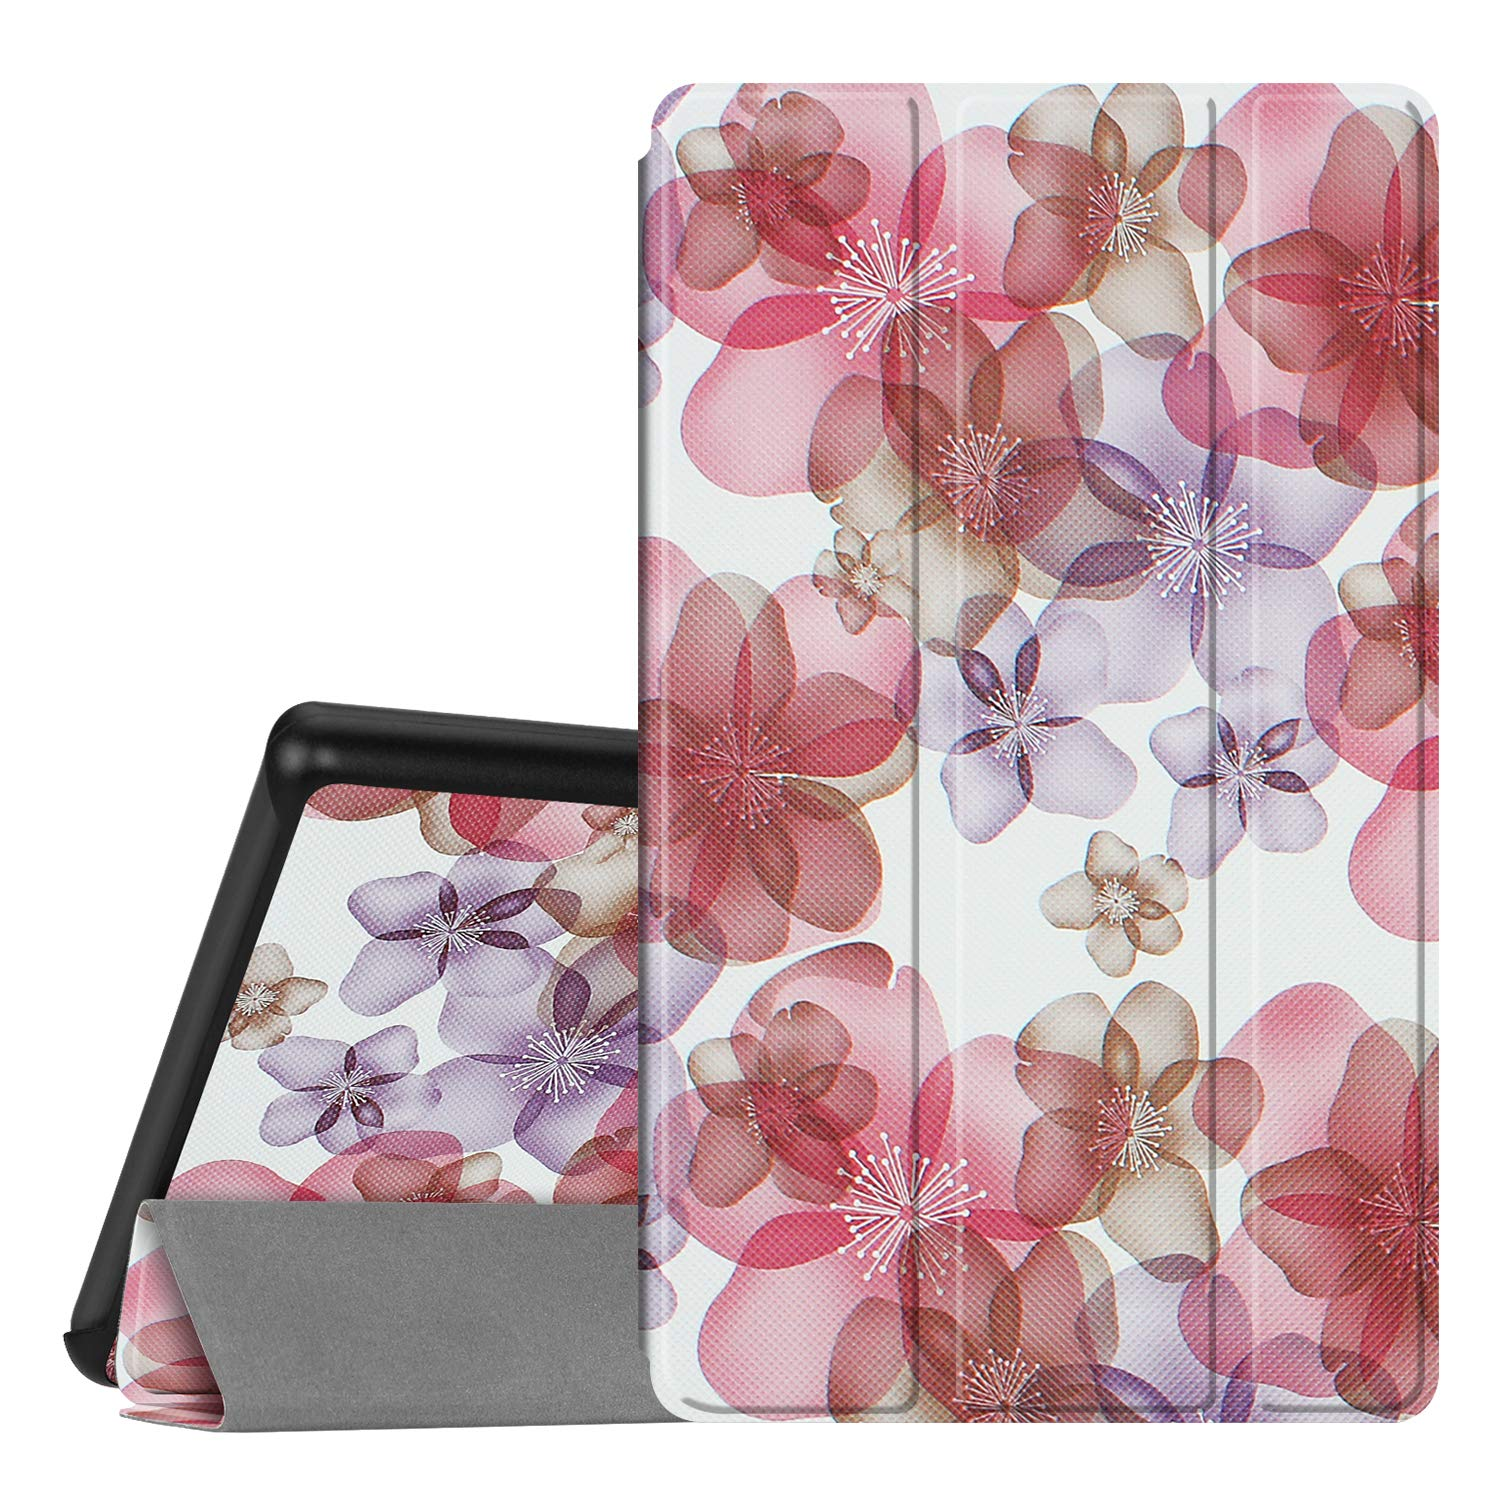 Fintie Slim Case for All-New Amazon Fire 7 Tablet (9th Generation, 2019 Release), Ultra Lightweight Slim Shell Standing Cover with Auto Wake/Sleep, Silk Flowers